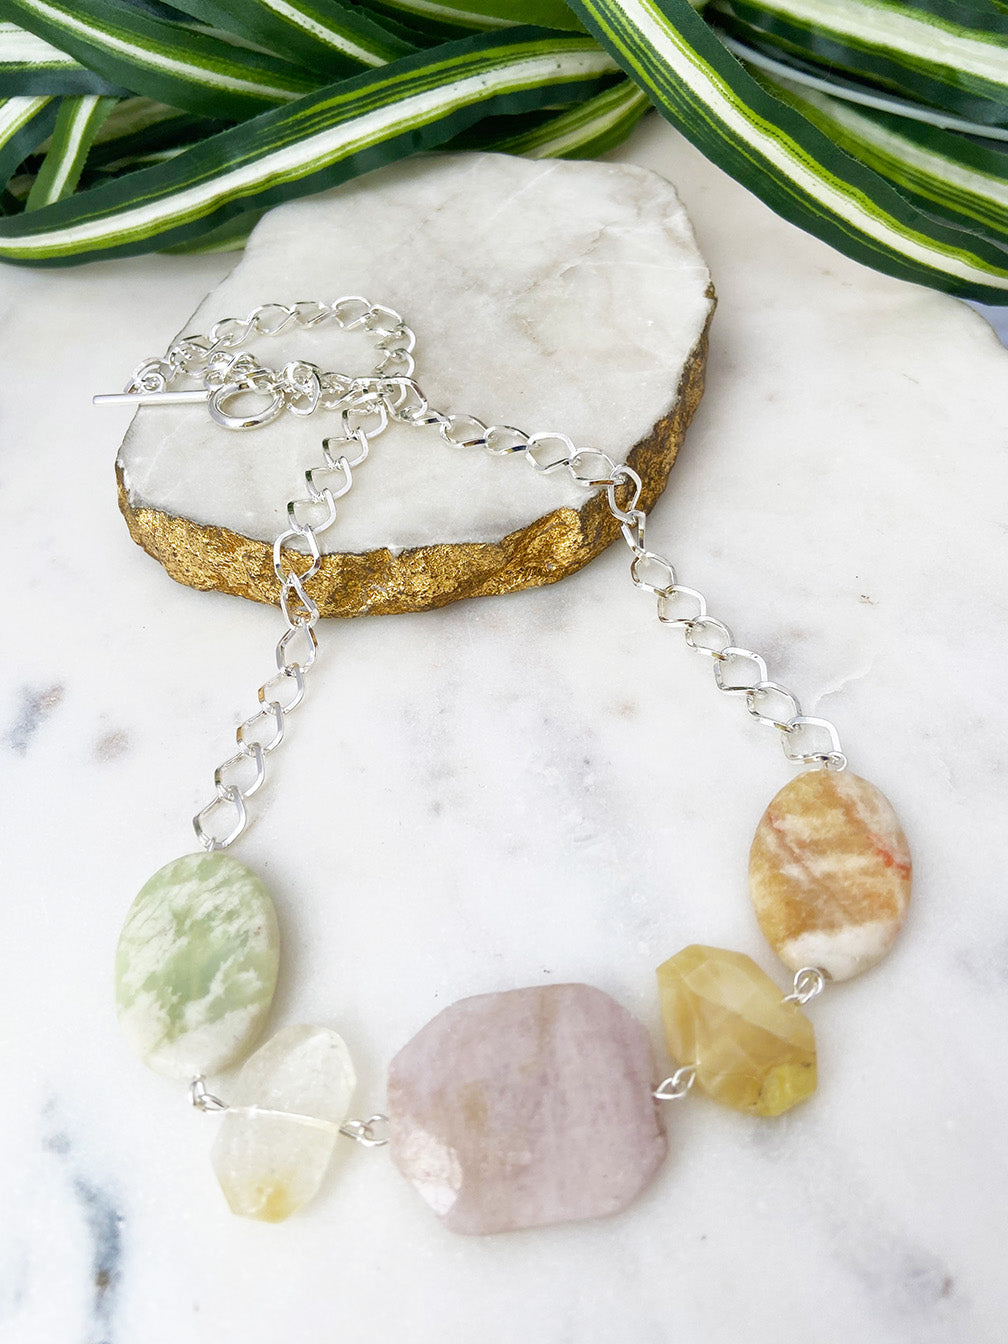 quintet necklace - QT-39-NL